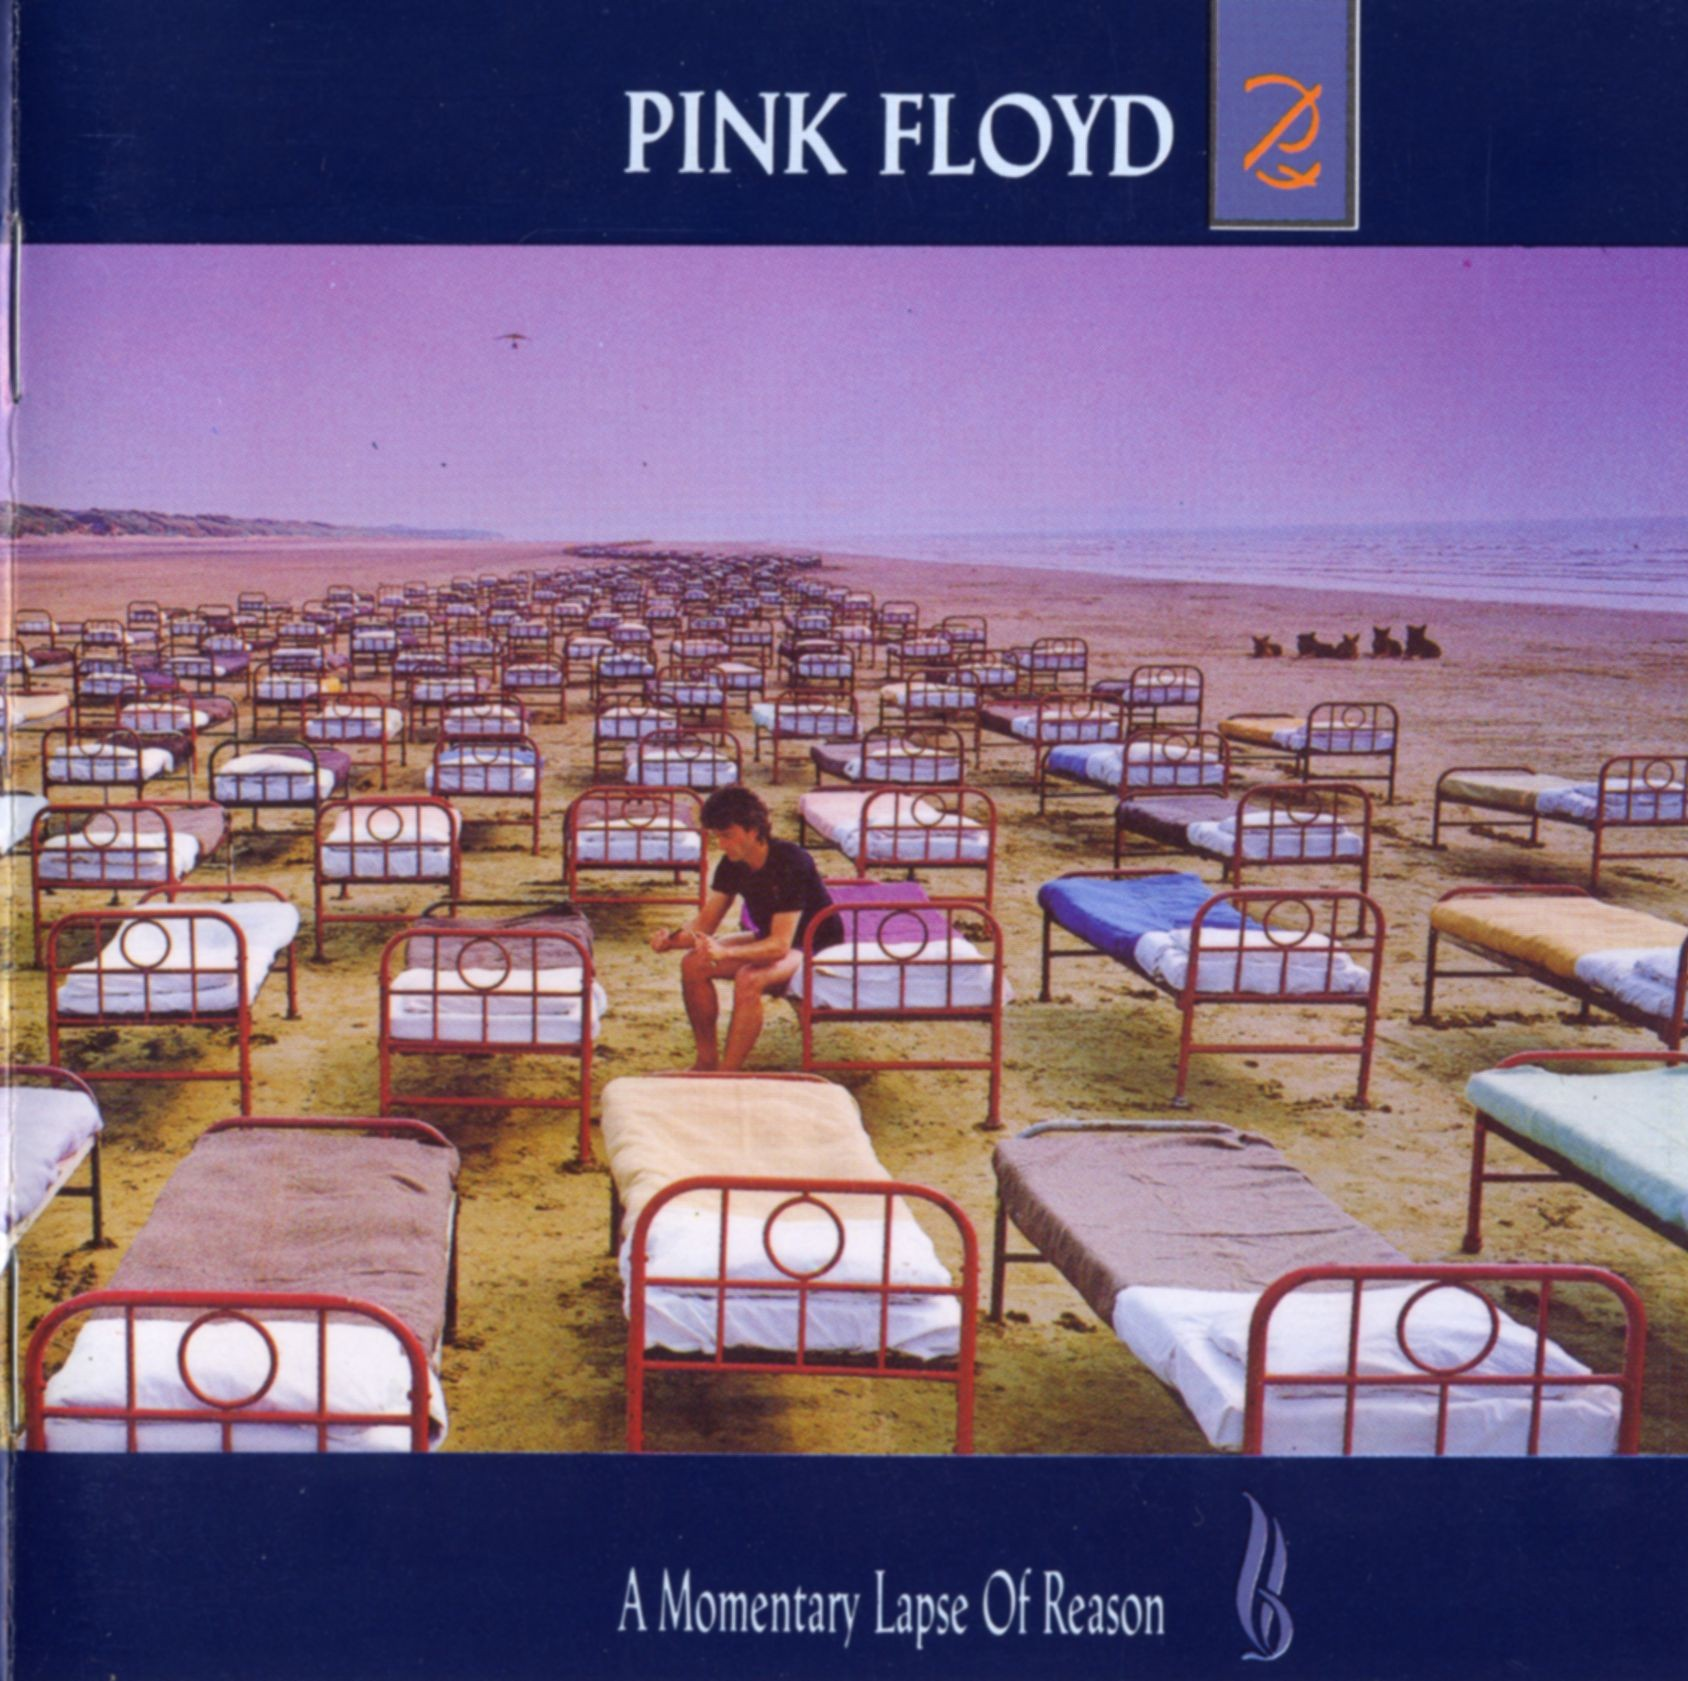 A momentary lapse of reason - Pink Floyd - front